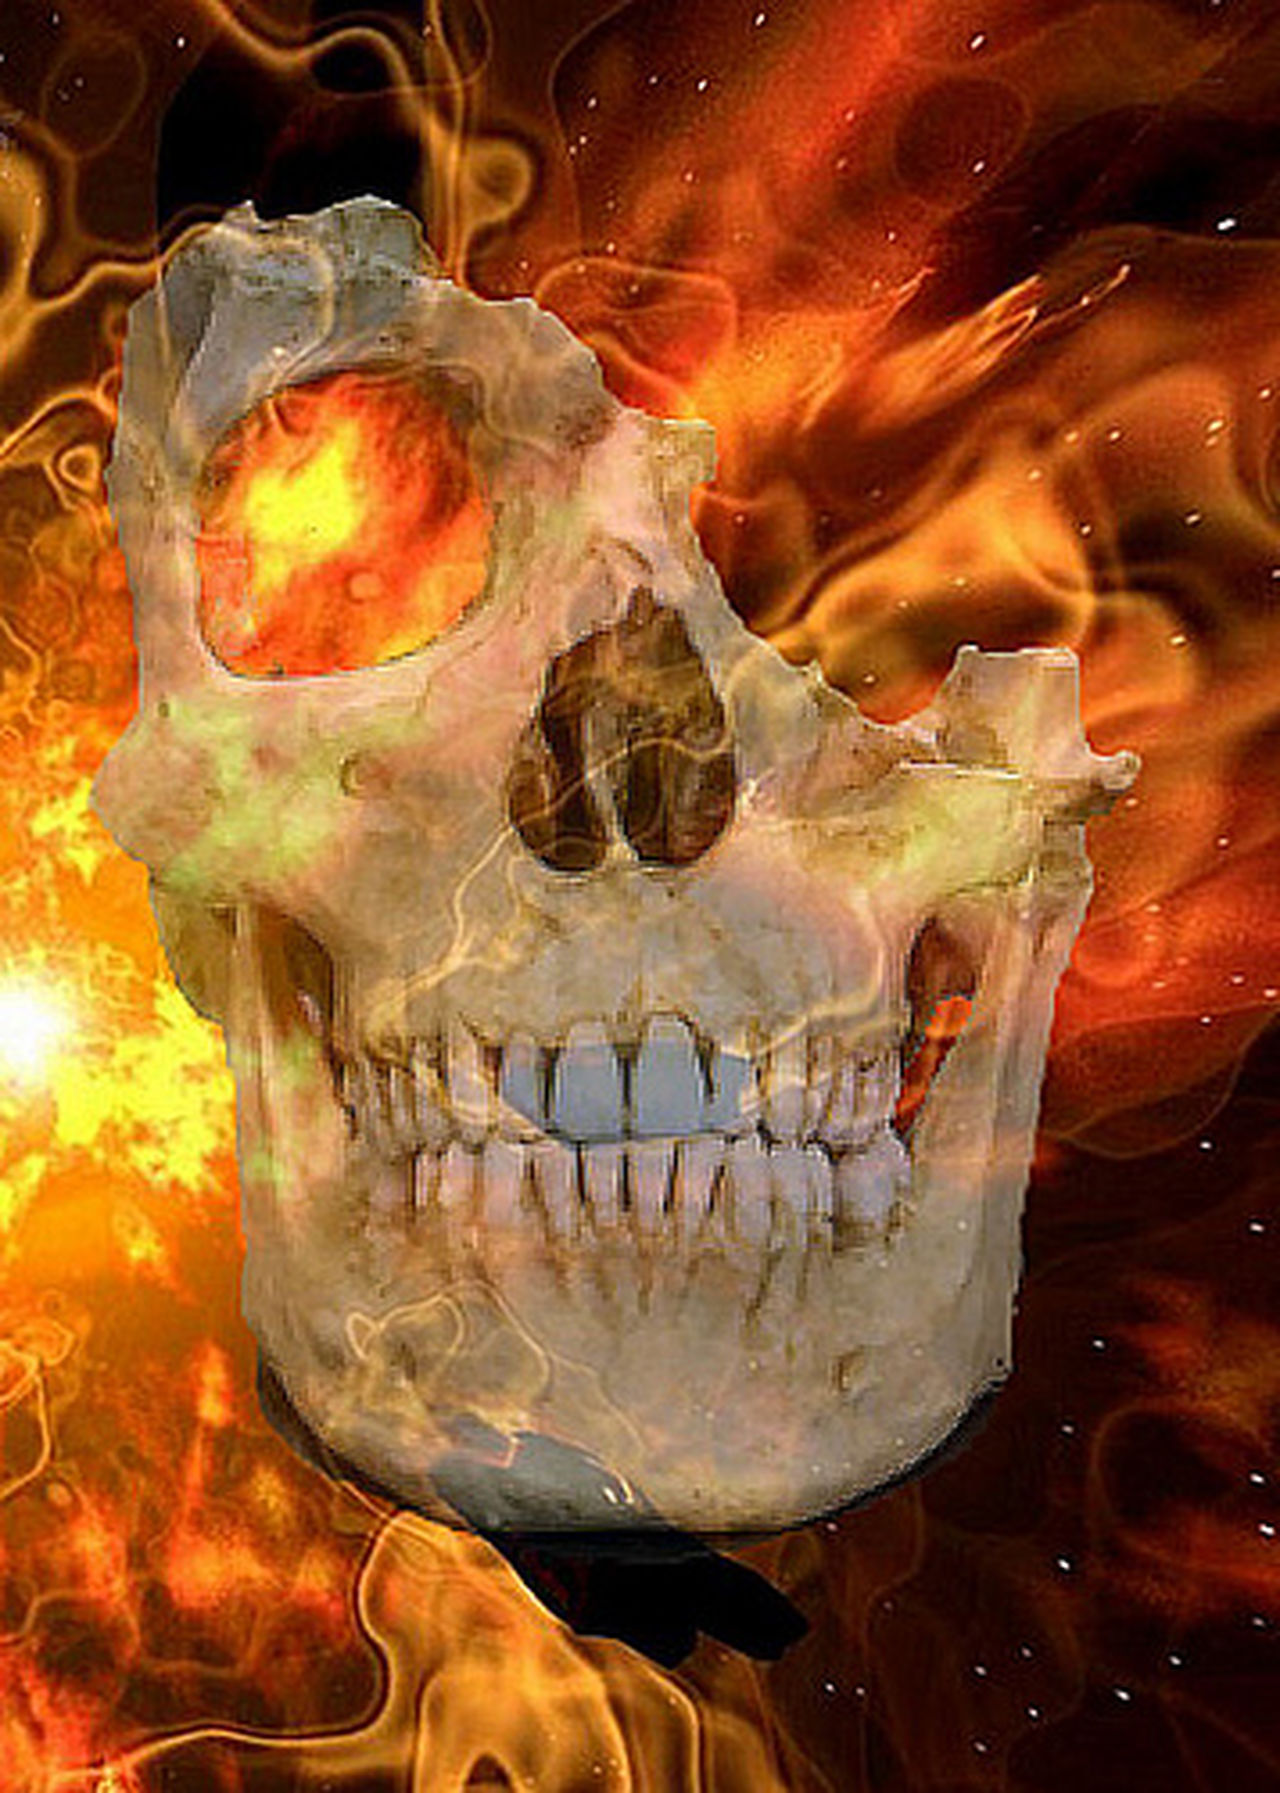 Flaming Skull Close-up Hot Flames & Fire Flames Burning On Fire Fire Human Body Part Digital Art Skull